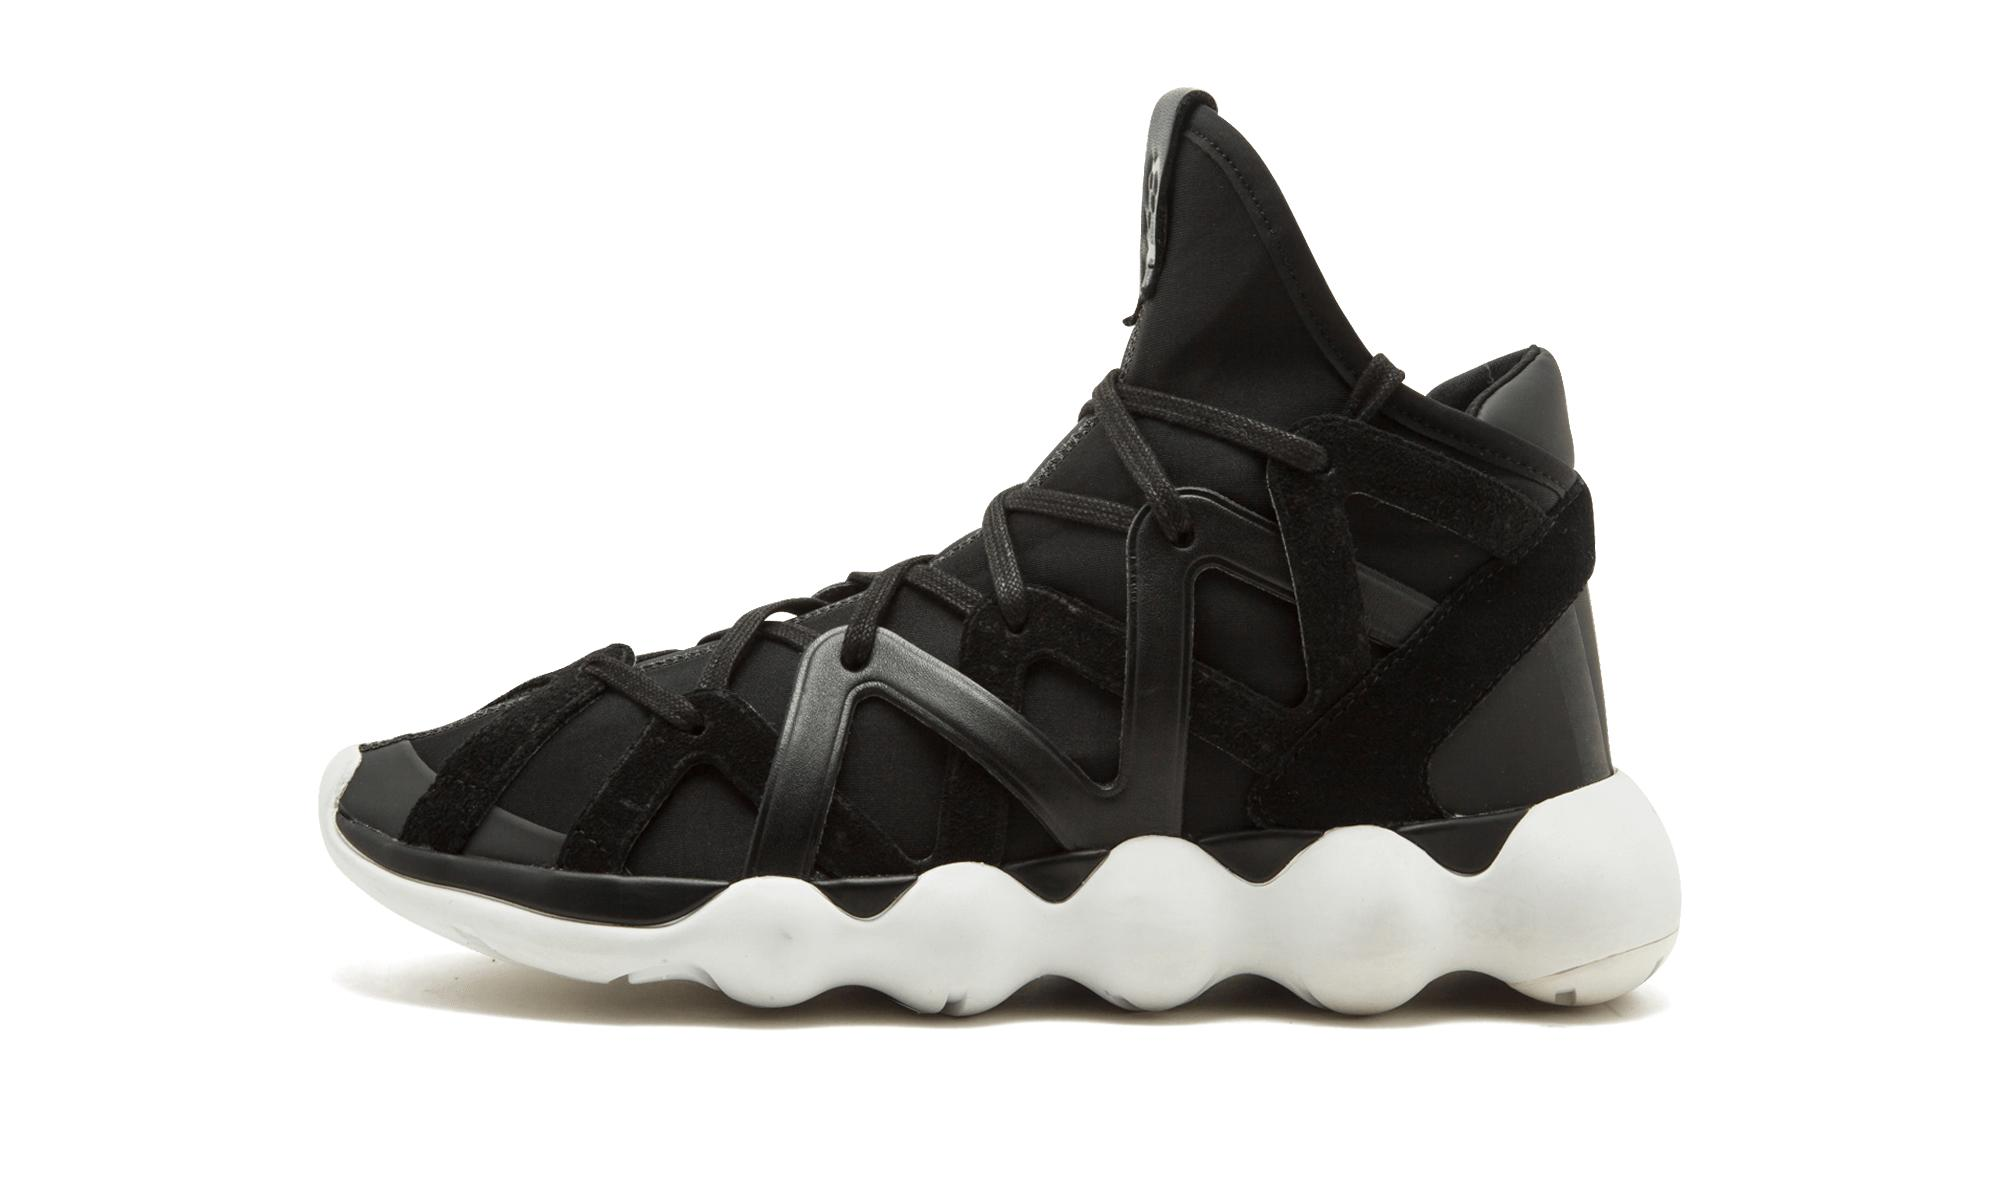 a81eca99b1a9c Adidas - Black Y-3 Kyujo High for Men - Lyst. View fullscreen